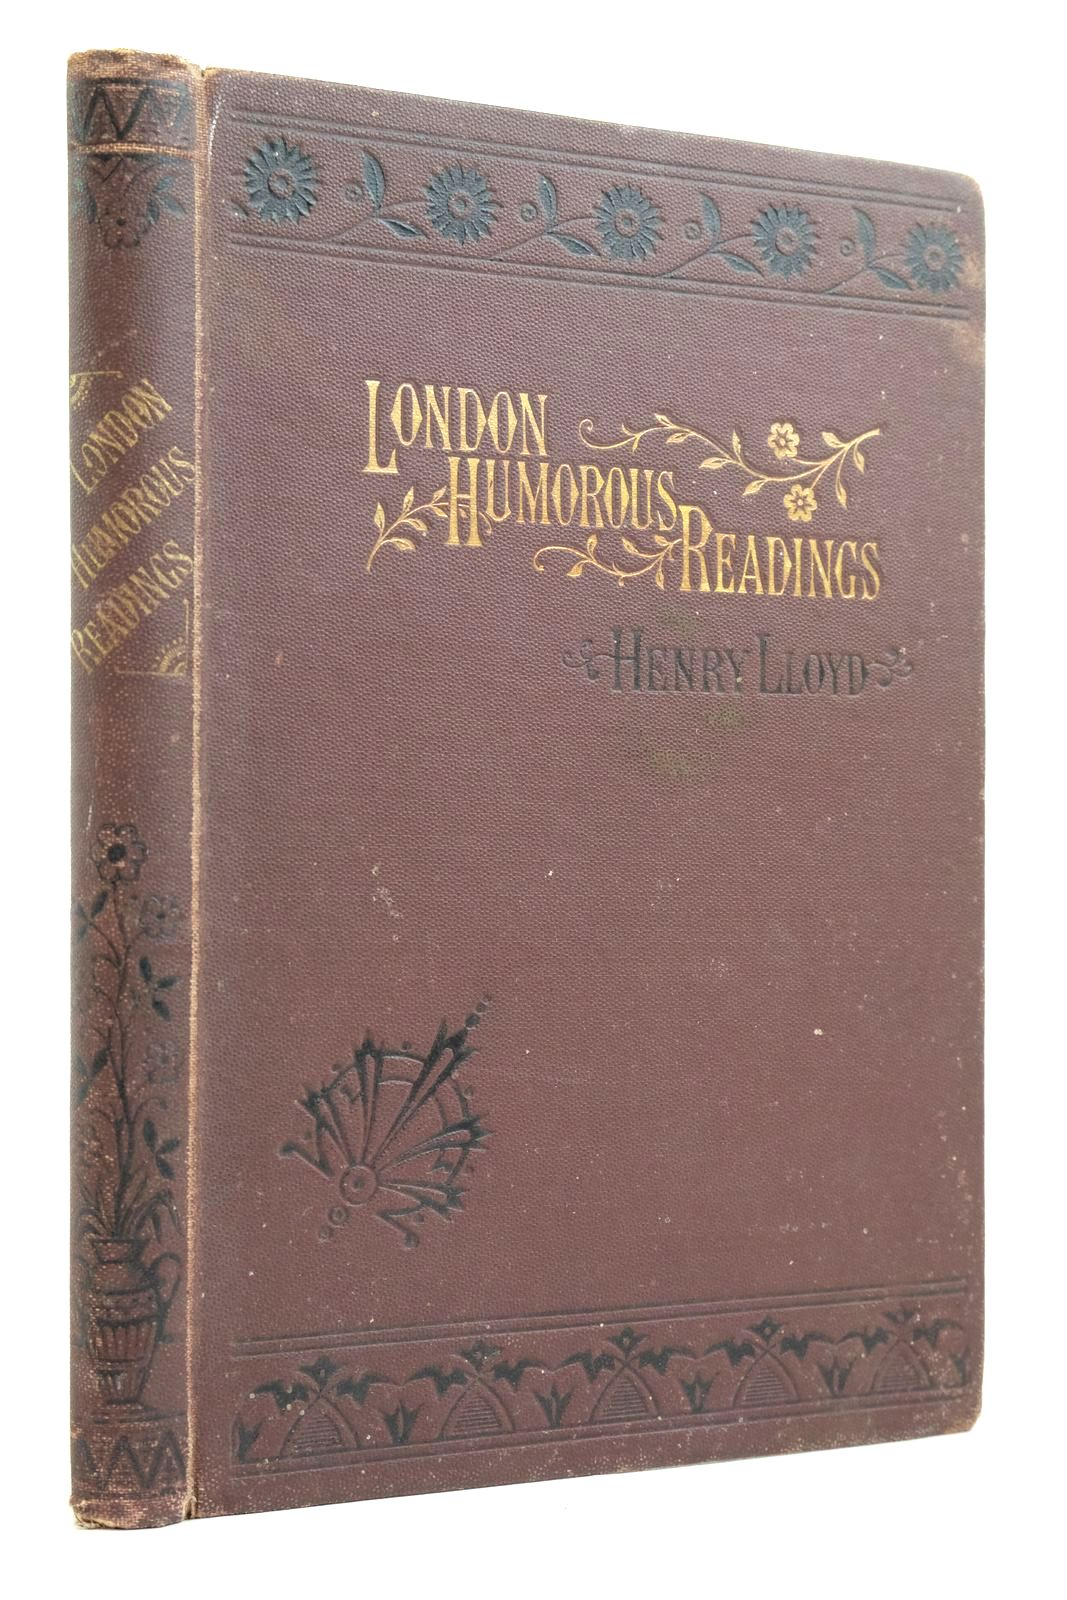 Photo of LONDON HUMOROUS READINGS- Stock Number: 2135290